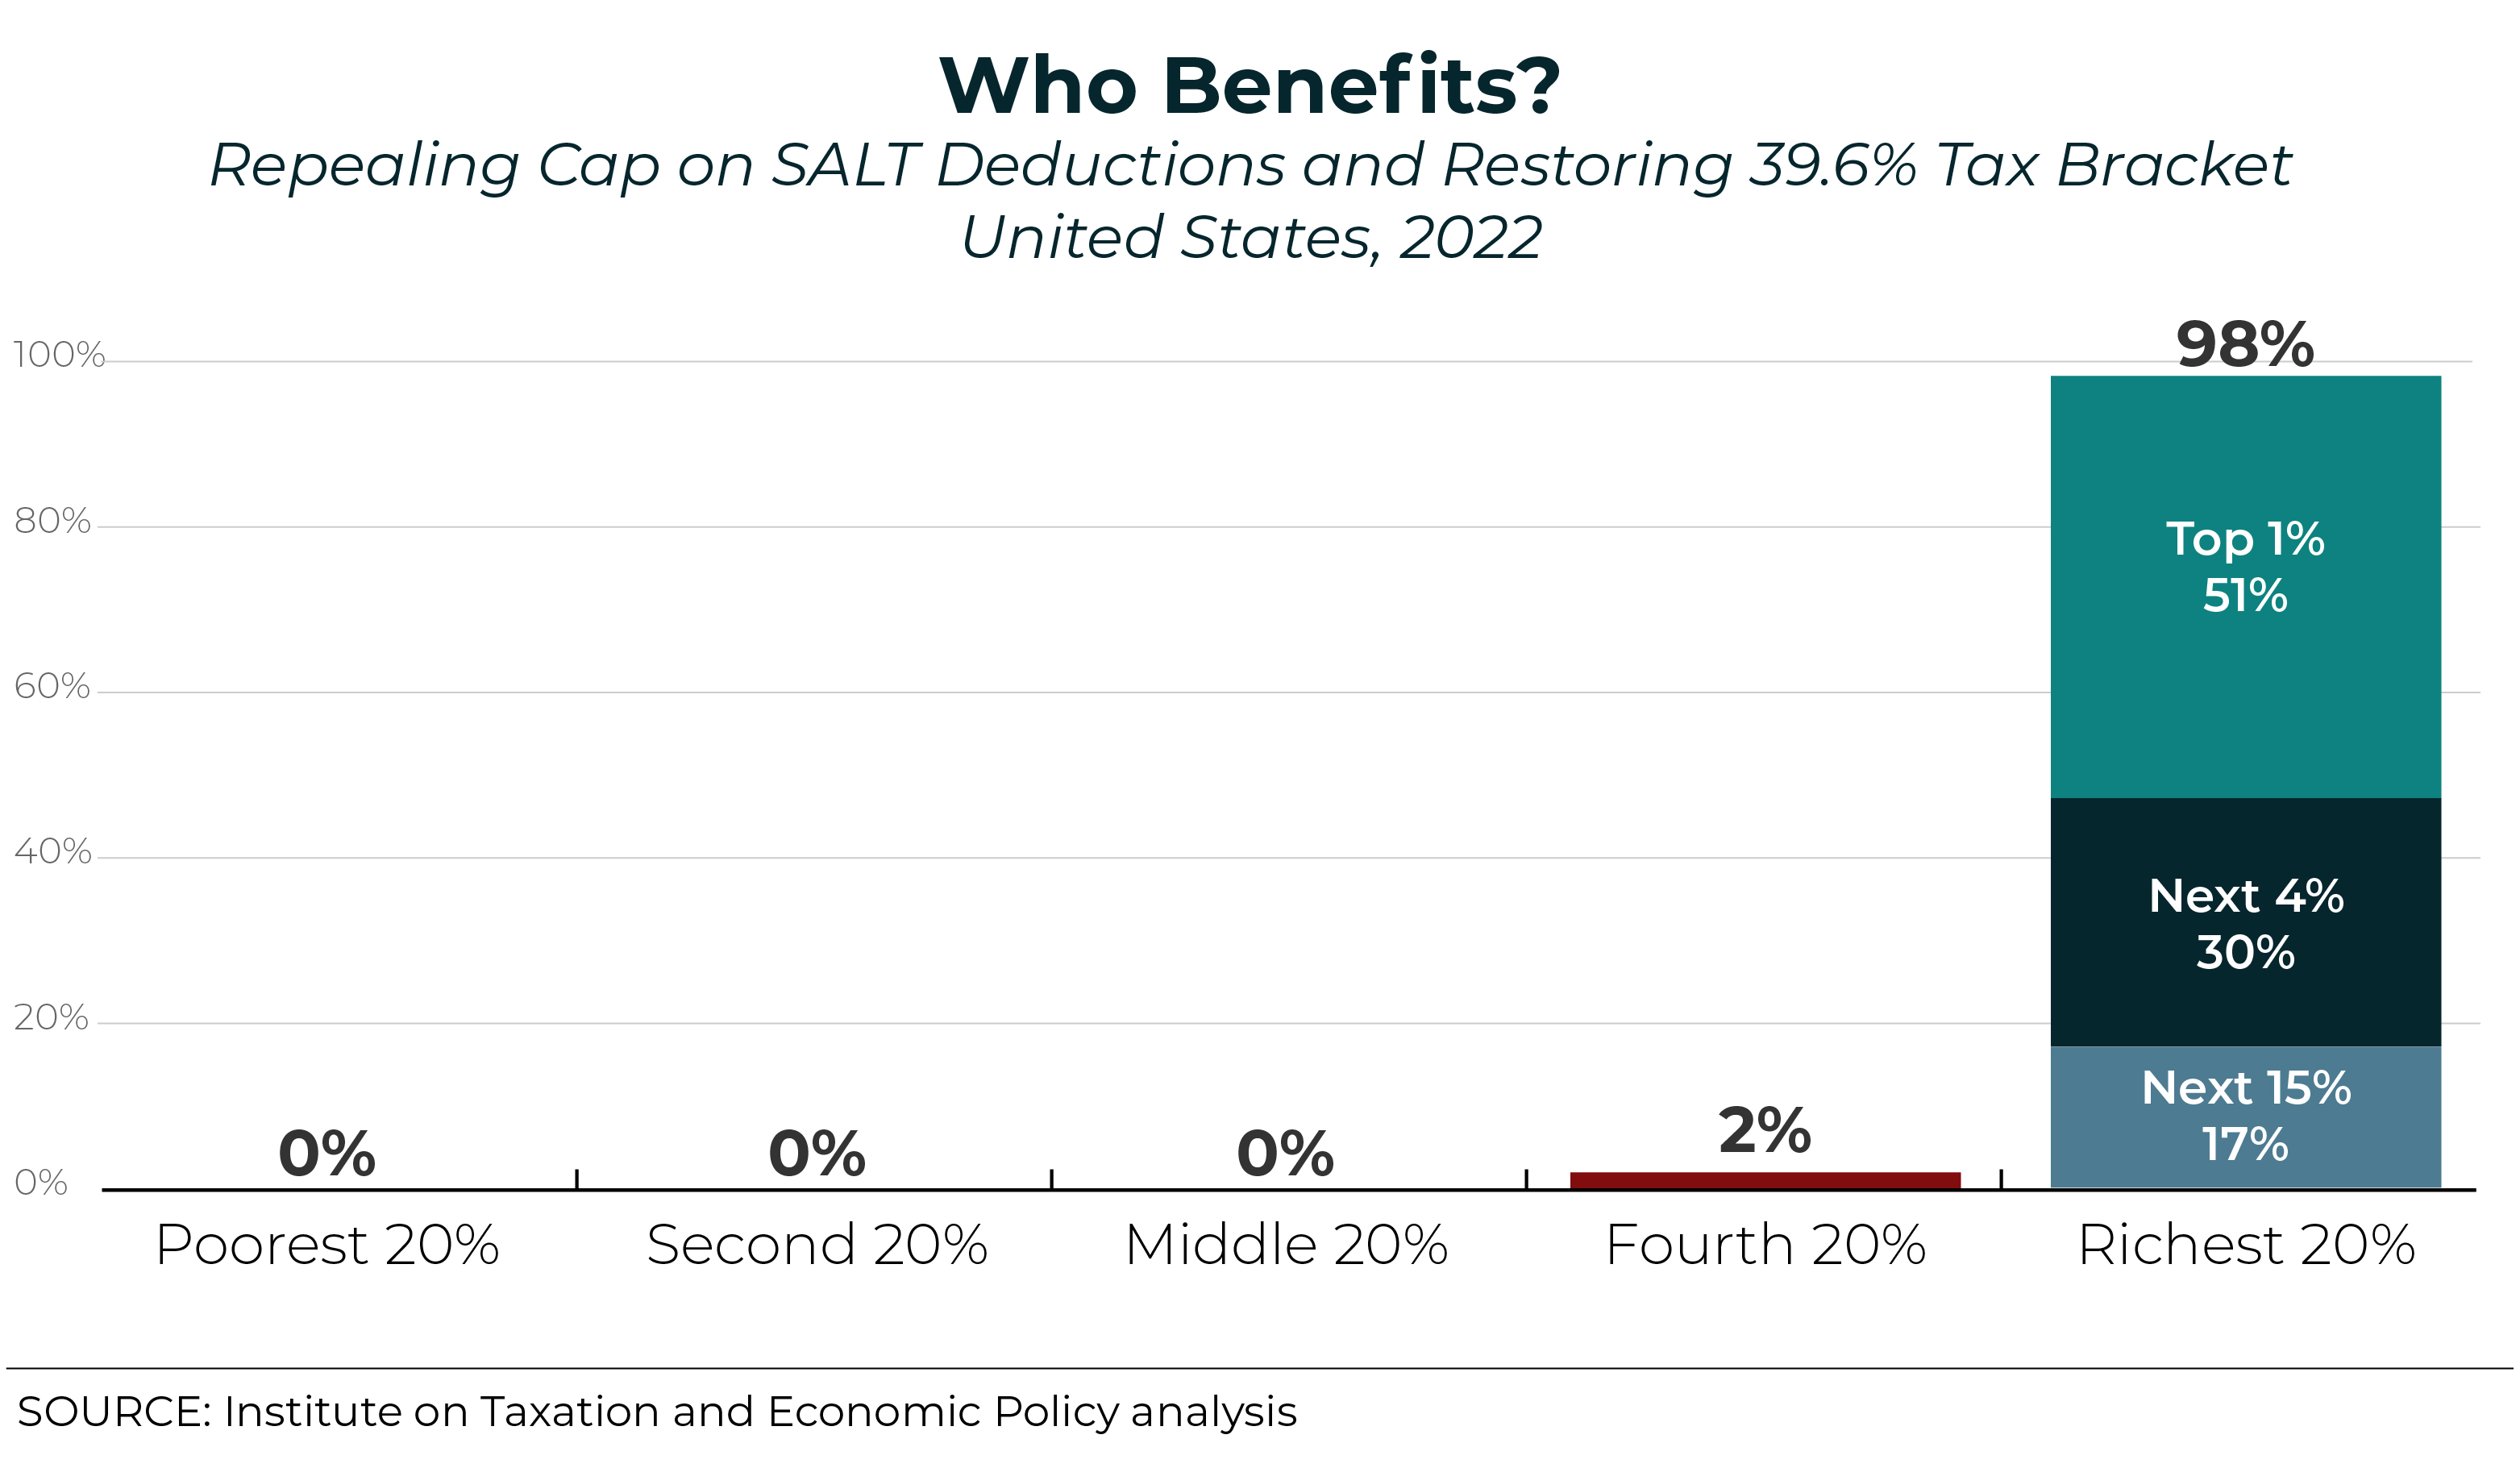 House Democrats' Latest Bill on SALT Deductions Would Mean Bigger Tax Cuts for the Rich